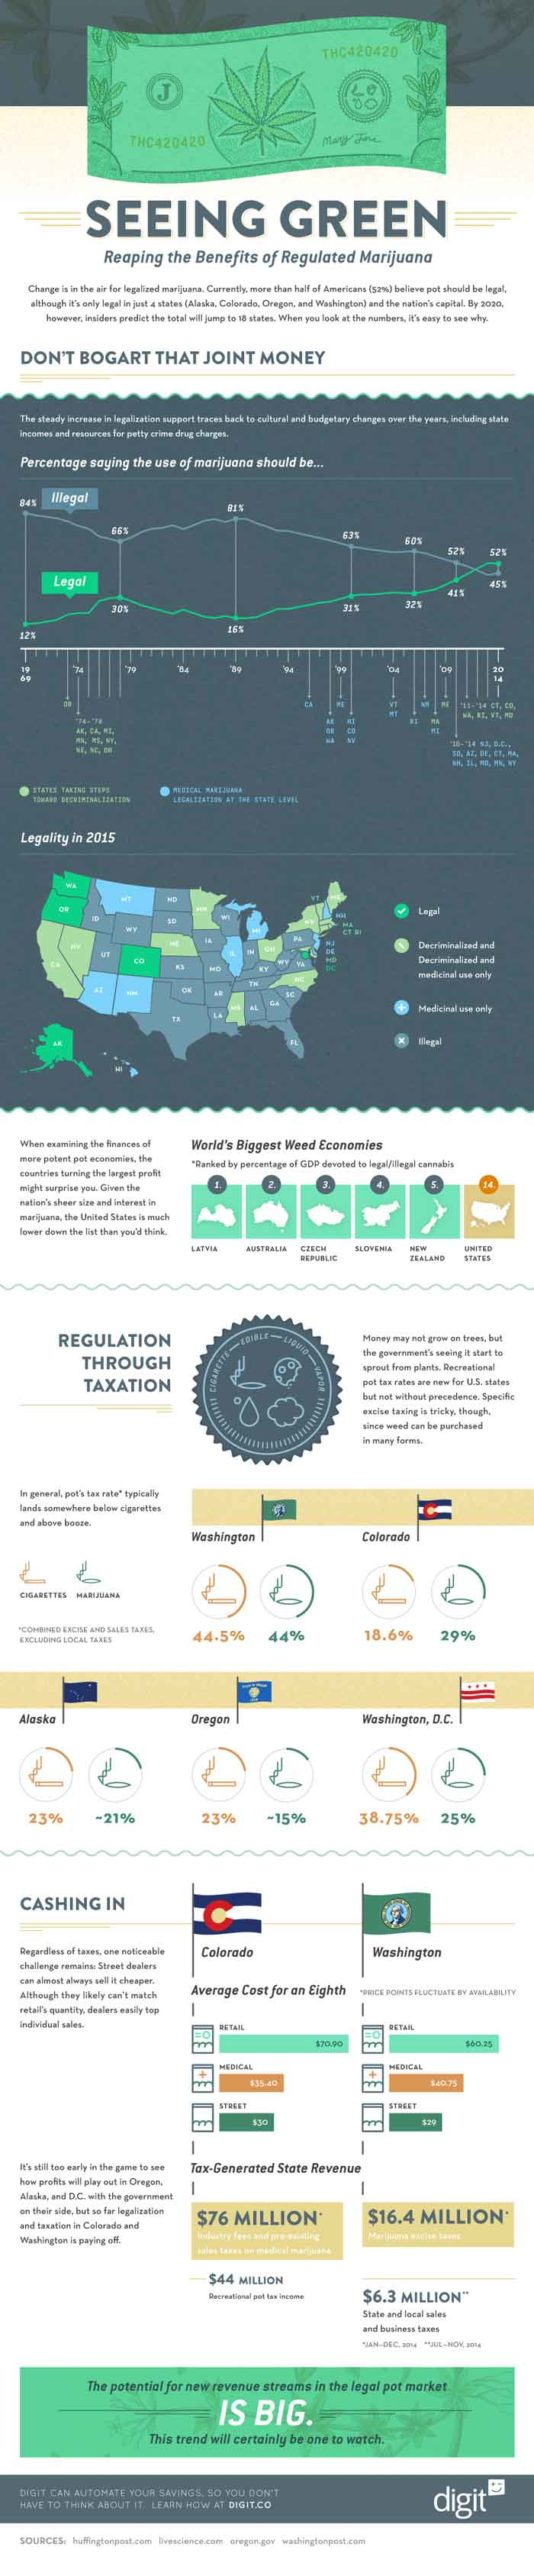 best infographic examples fig 18 seeing green